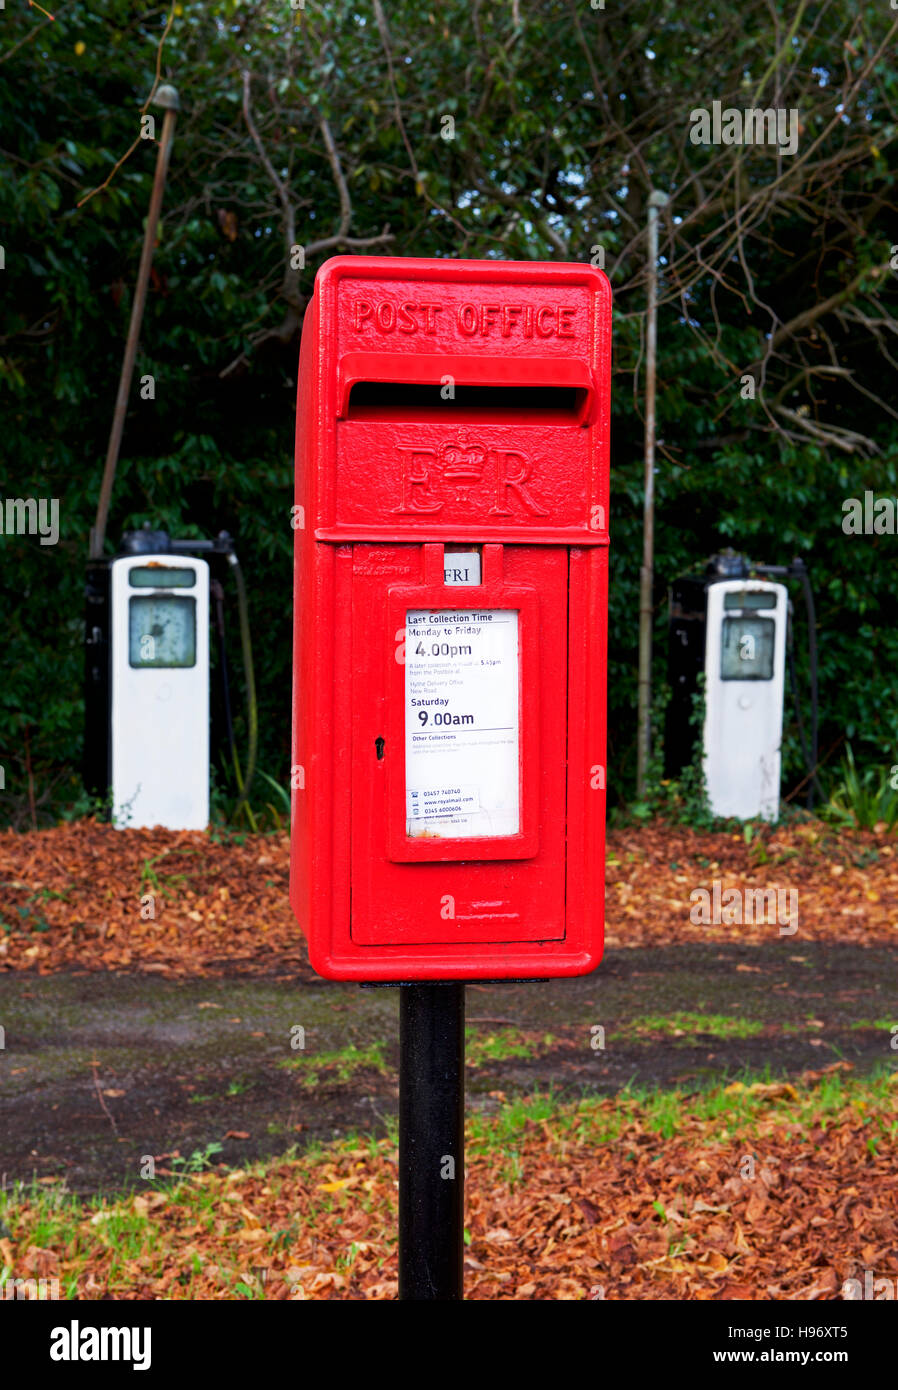 Postbox and gas pumps from abandoned petrol station, Exbury, New Forest, Hampshire, England UK, - Stock Image